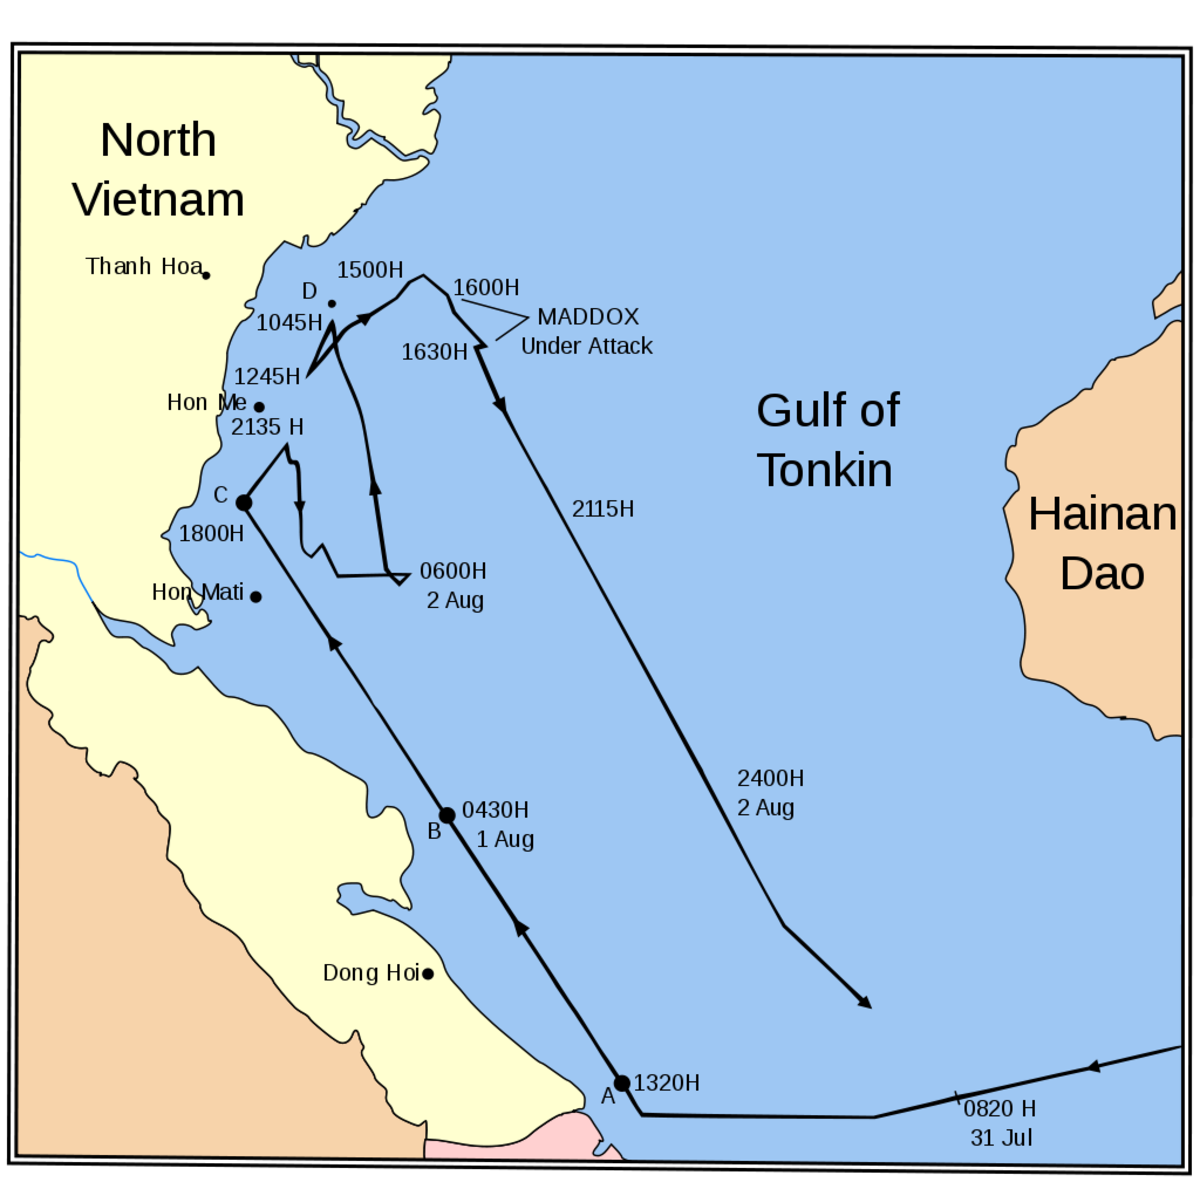 February 1,1964, American and South Vietnamese forces launched Operation Plan 34A prompting the Gulf of Tonkin incident that led to the Gulf of Tonkin Resolution.